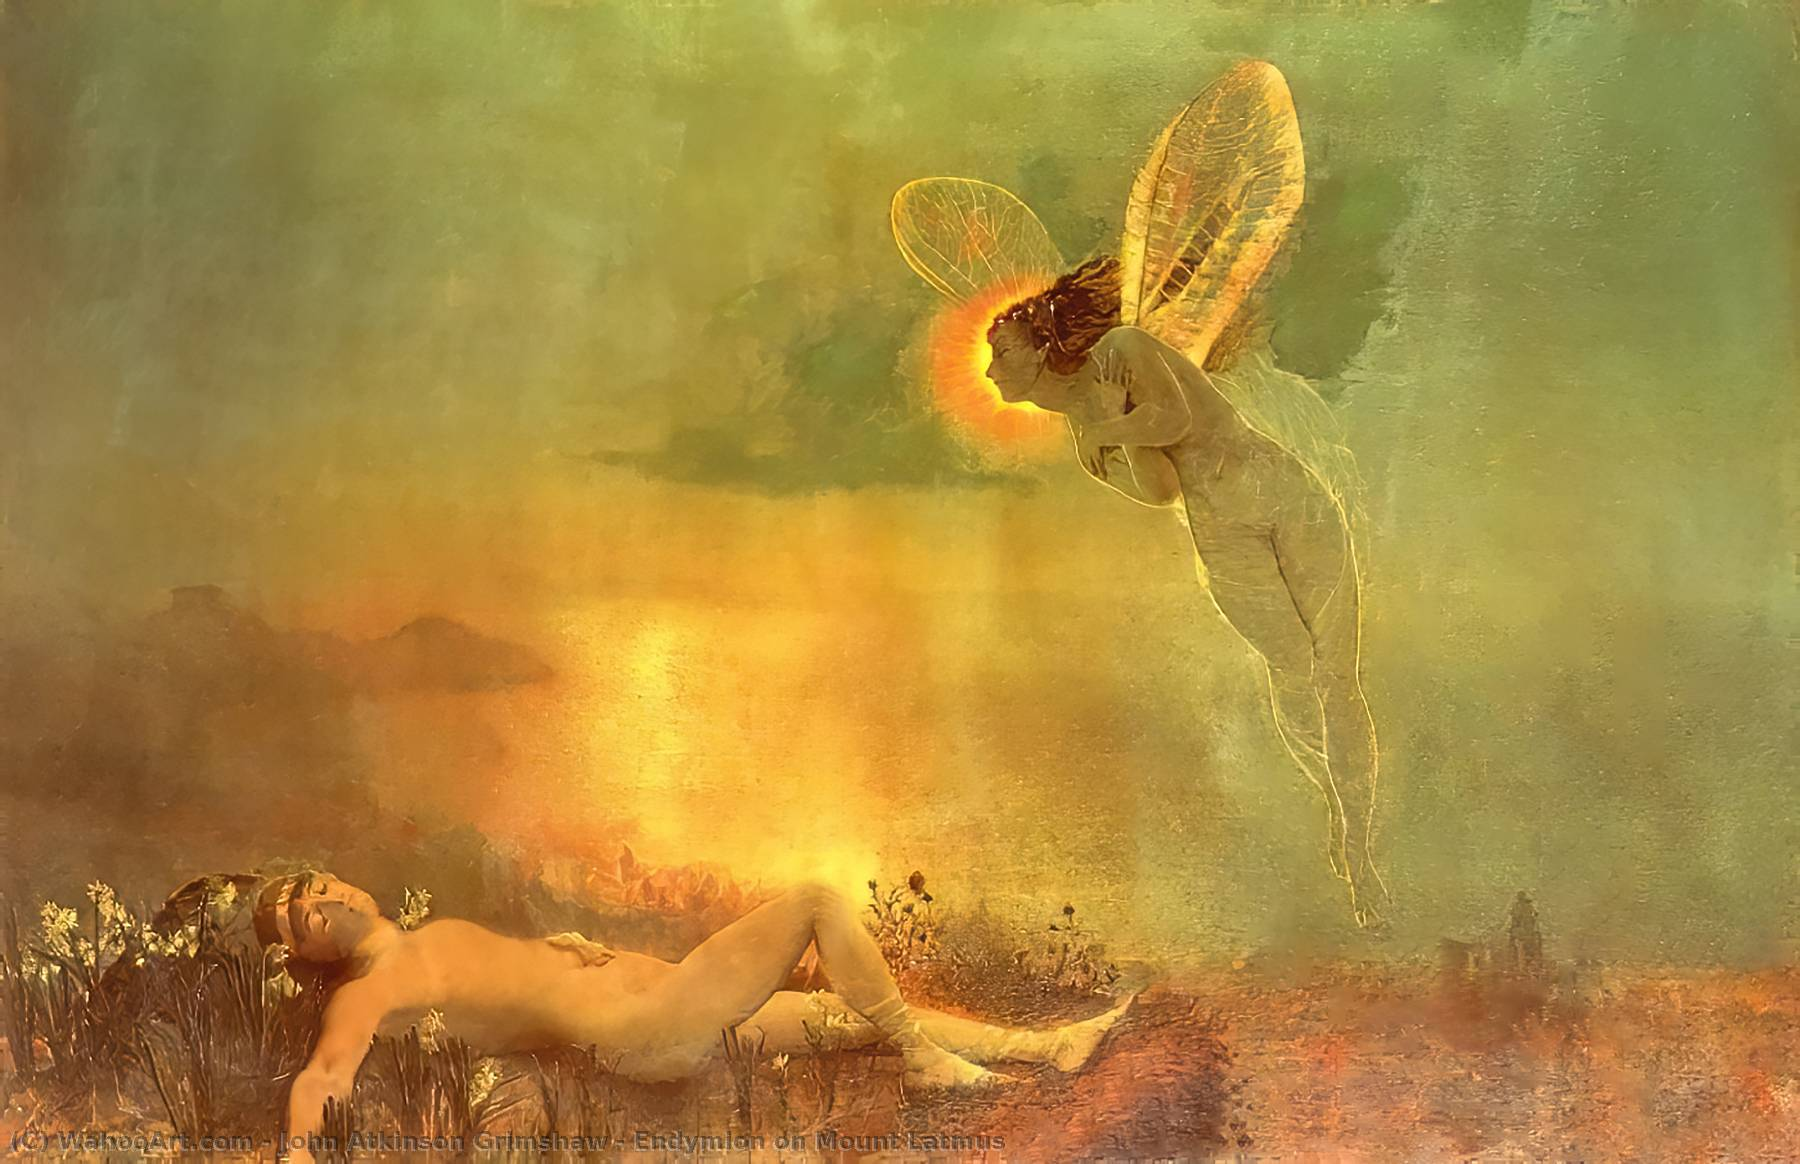 Endymion on Mount Latmus, 1879 by John Atkinson Grimshaw (1836-1893, United Kingdom) | Painting Copy | WahooArt.com